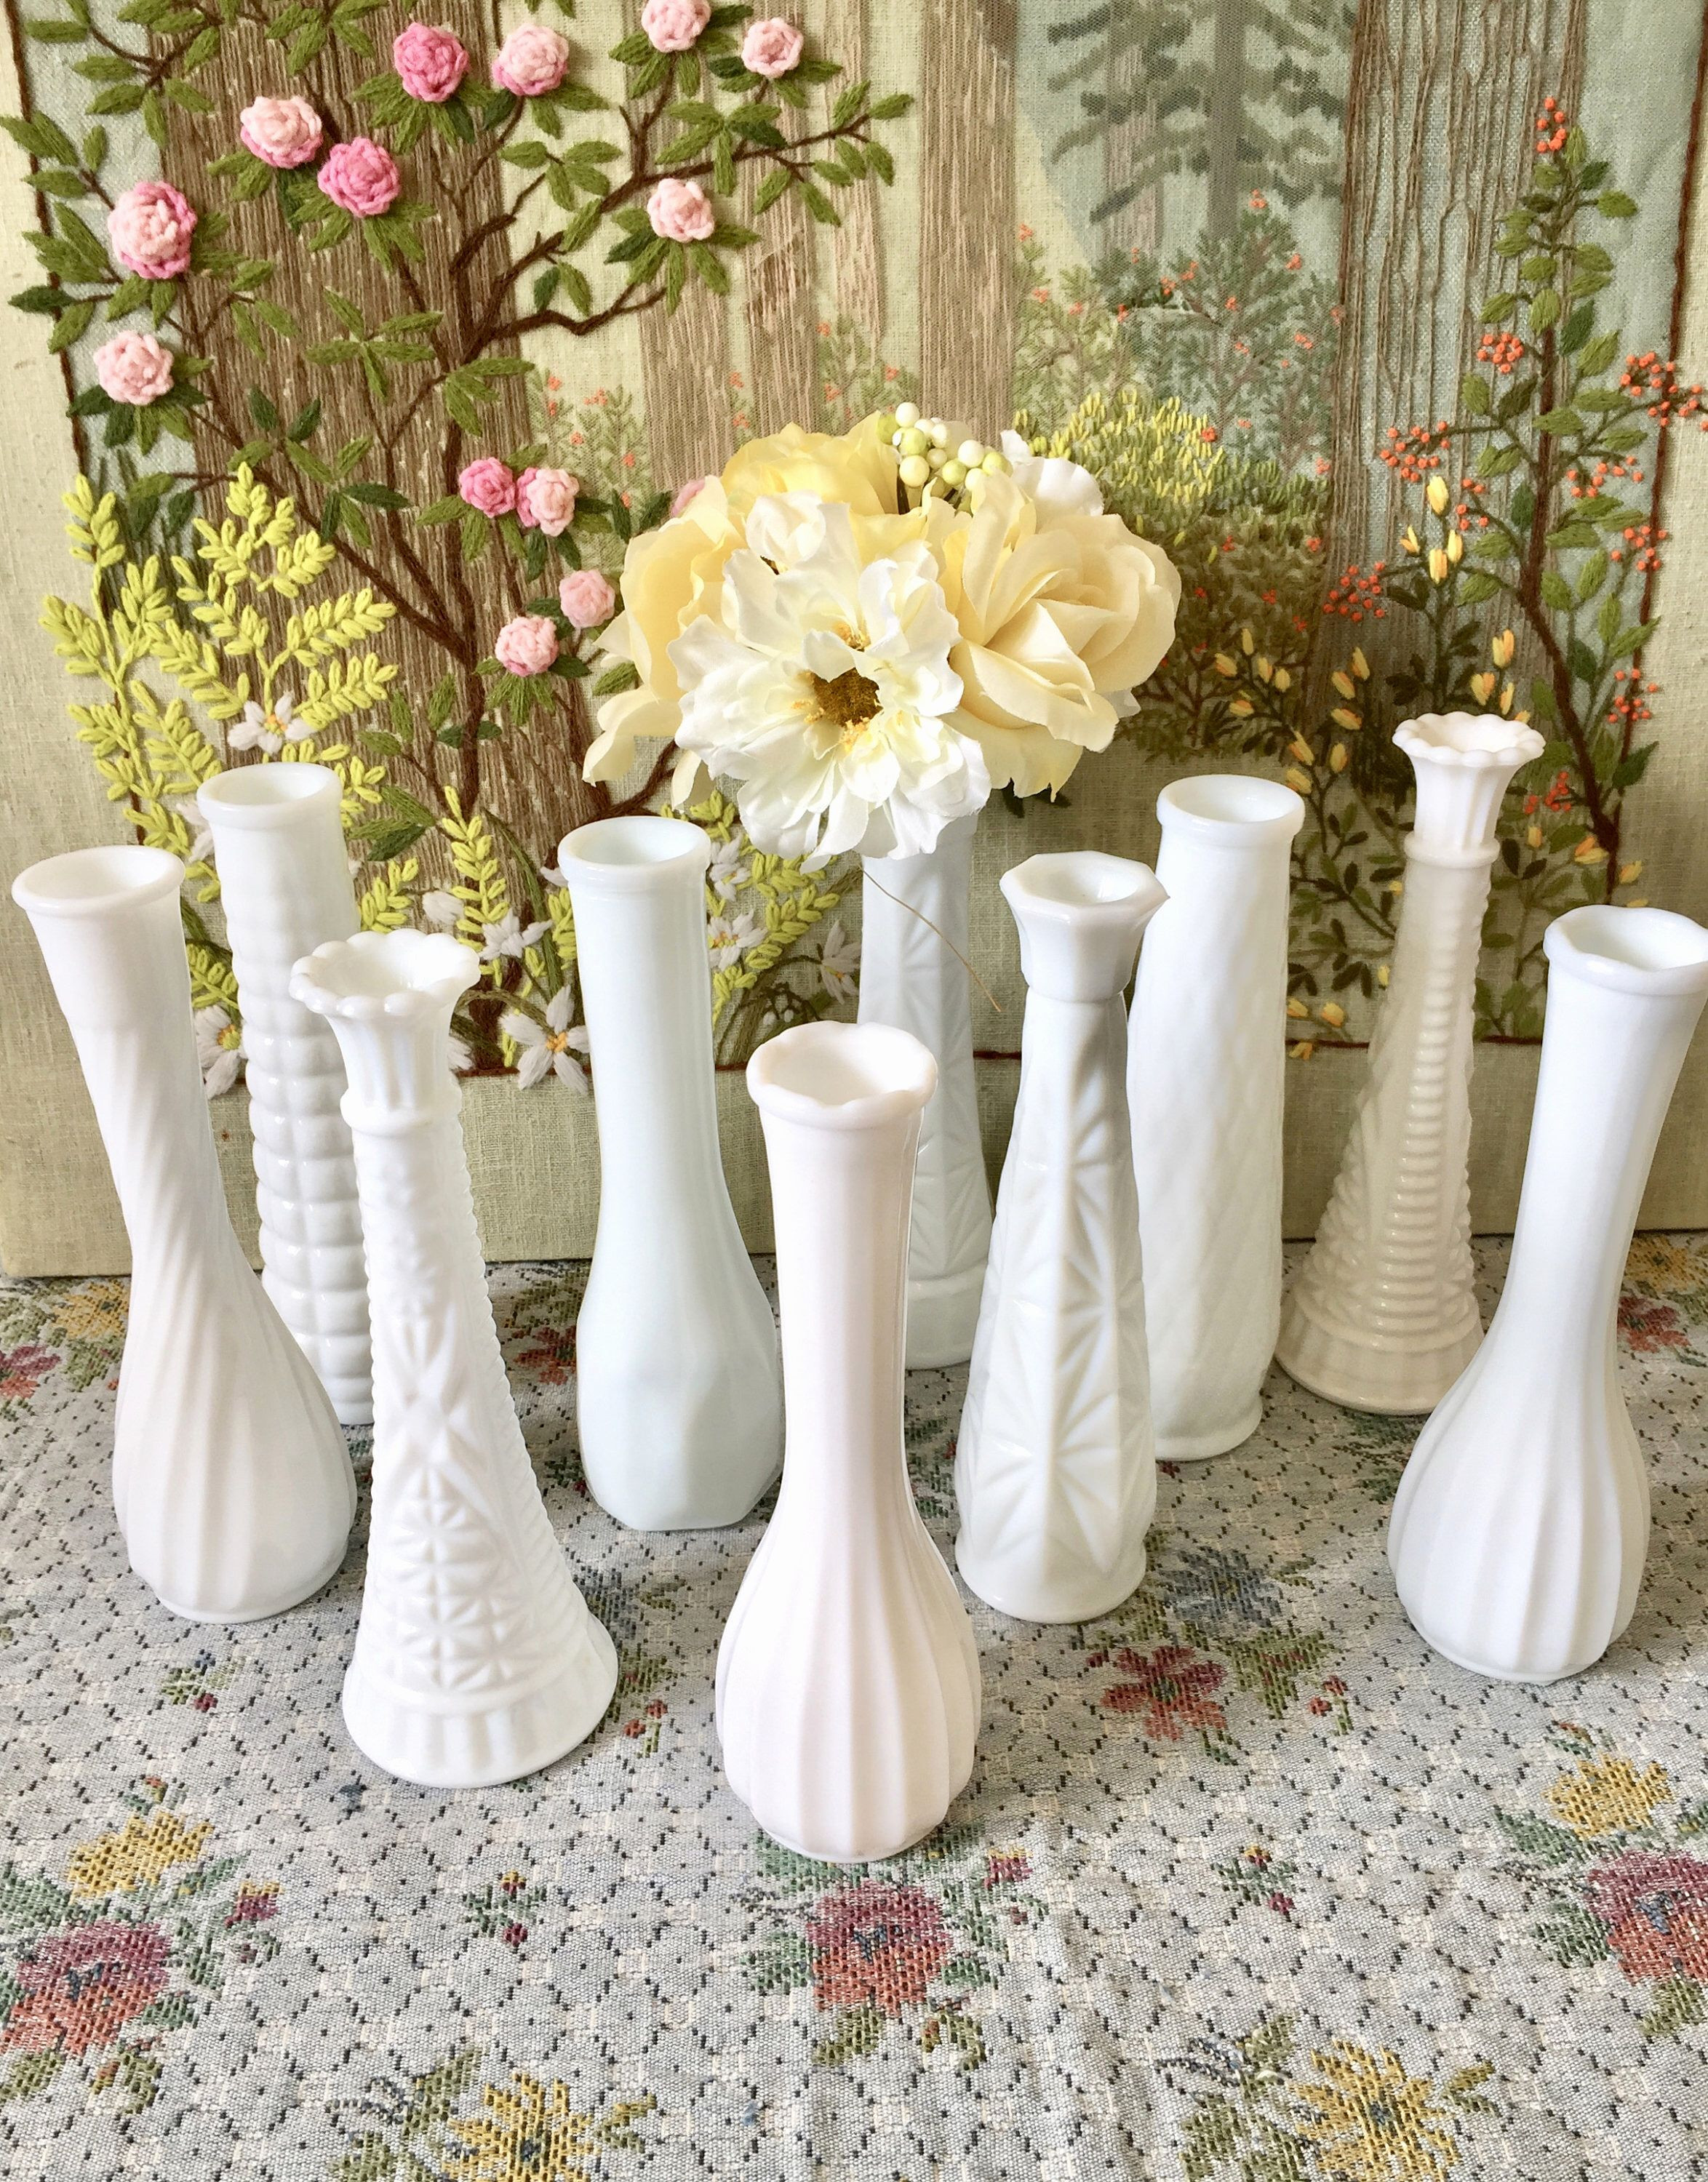 Small Crystal Vases wholesale Of 40 Glass Vases Bulk the Weekly World within Centerpiece Vases In Bulk Vase and Cellar Image Avorcor